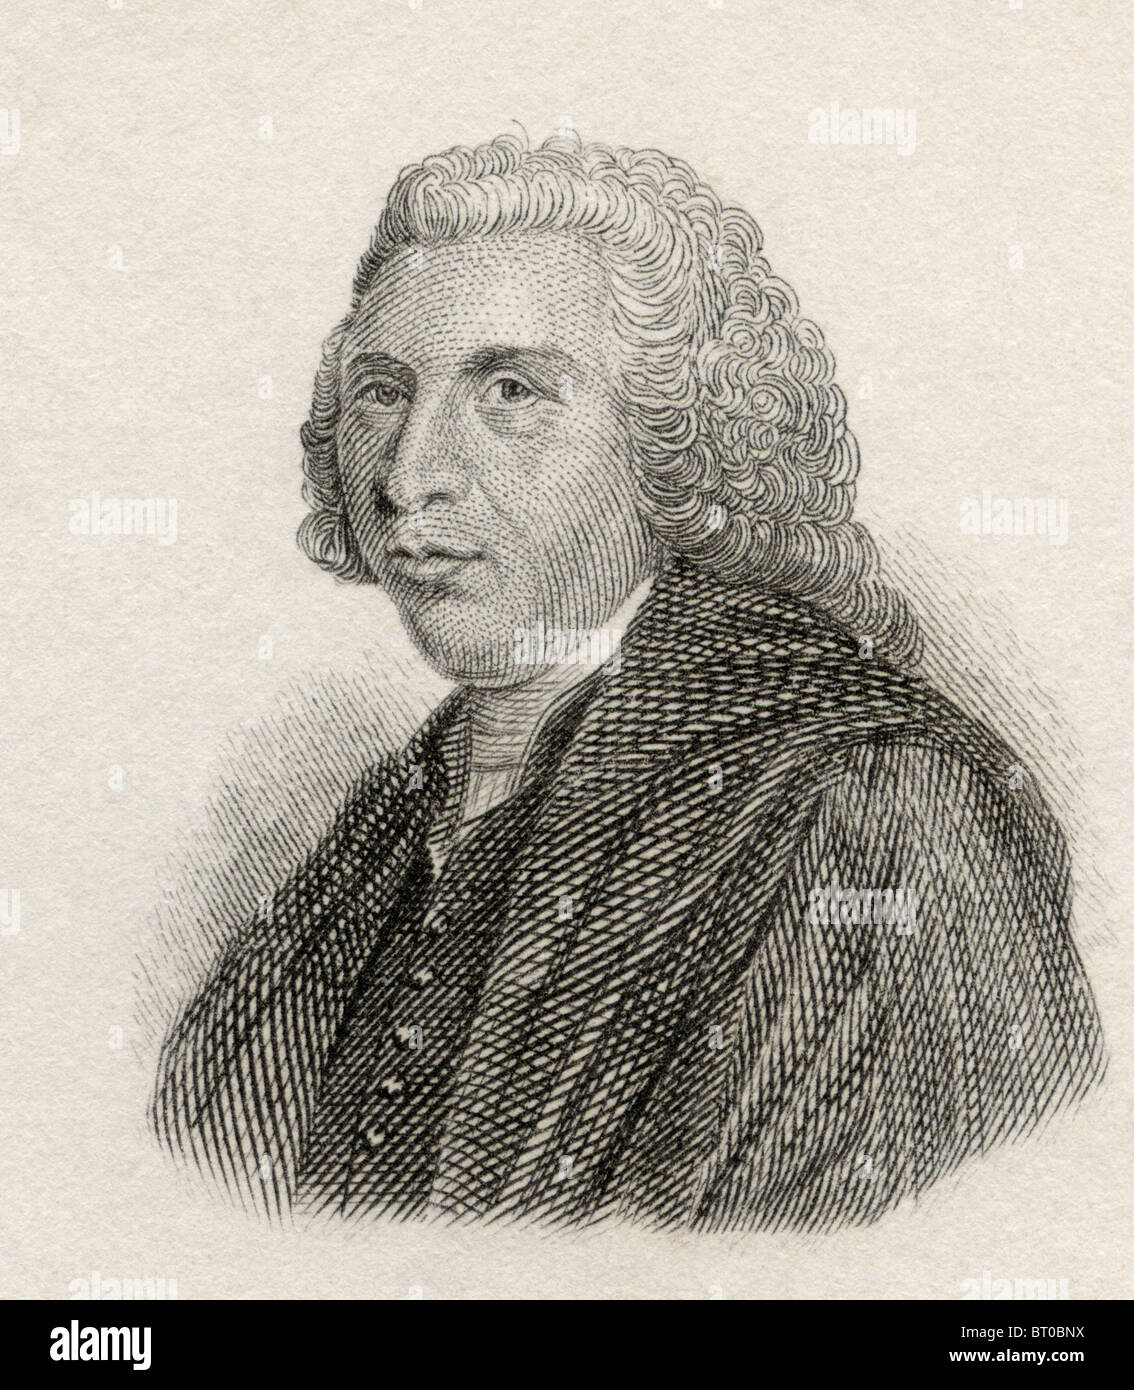 Hugh Blair, 1718 to 1800. Scottish minister of religion, author, and theorist of written discourse. - Stock Image